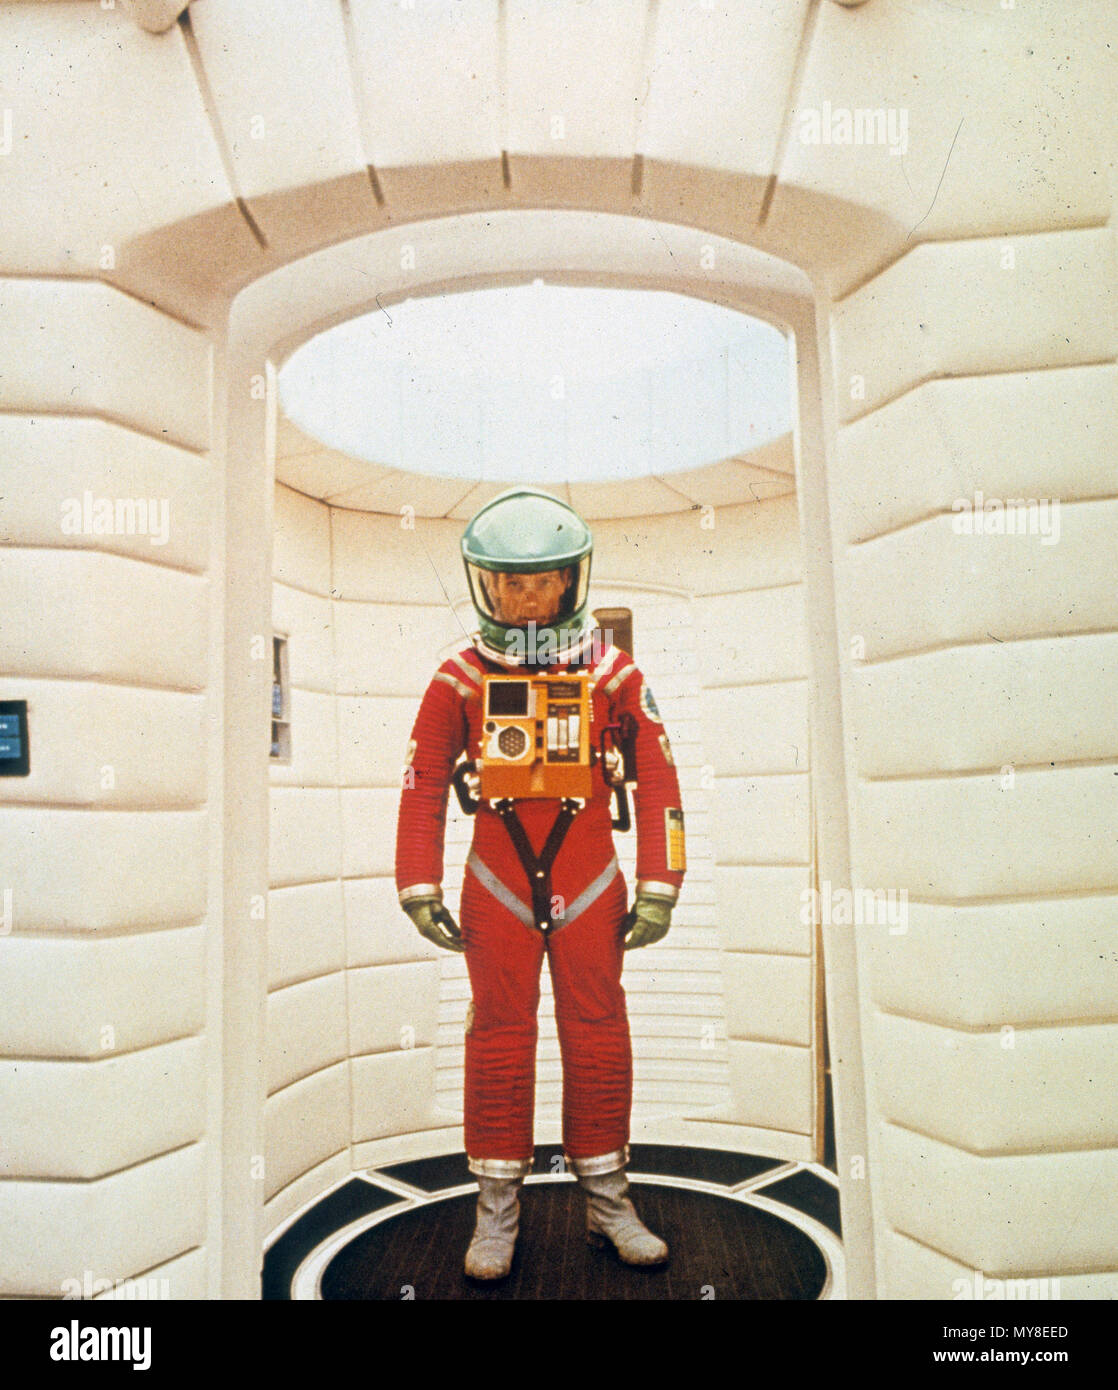 2001: A SPACE ODYSSEY . A 1968 MGM film with Keir Dullea - Stock Image